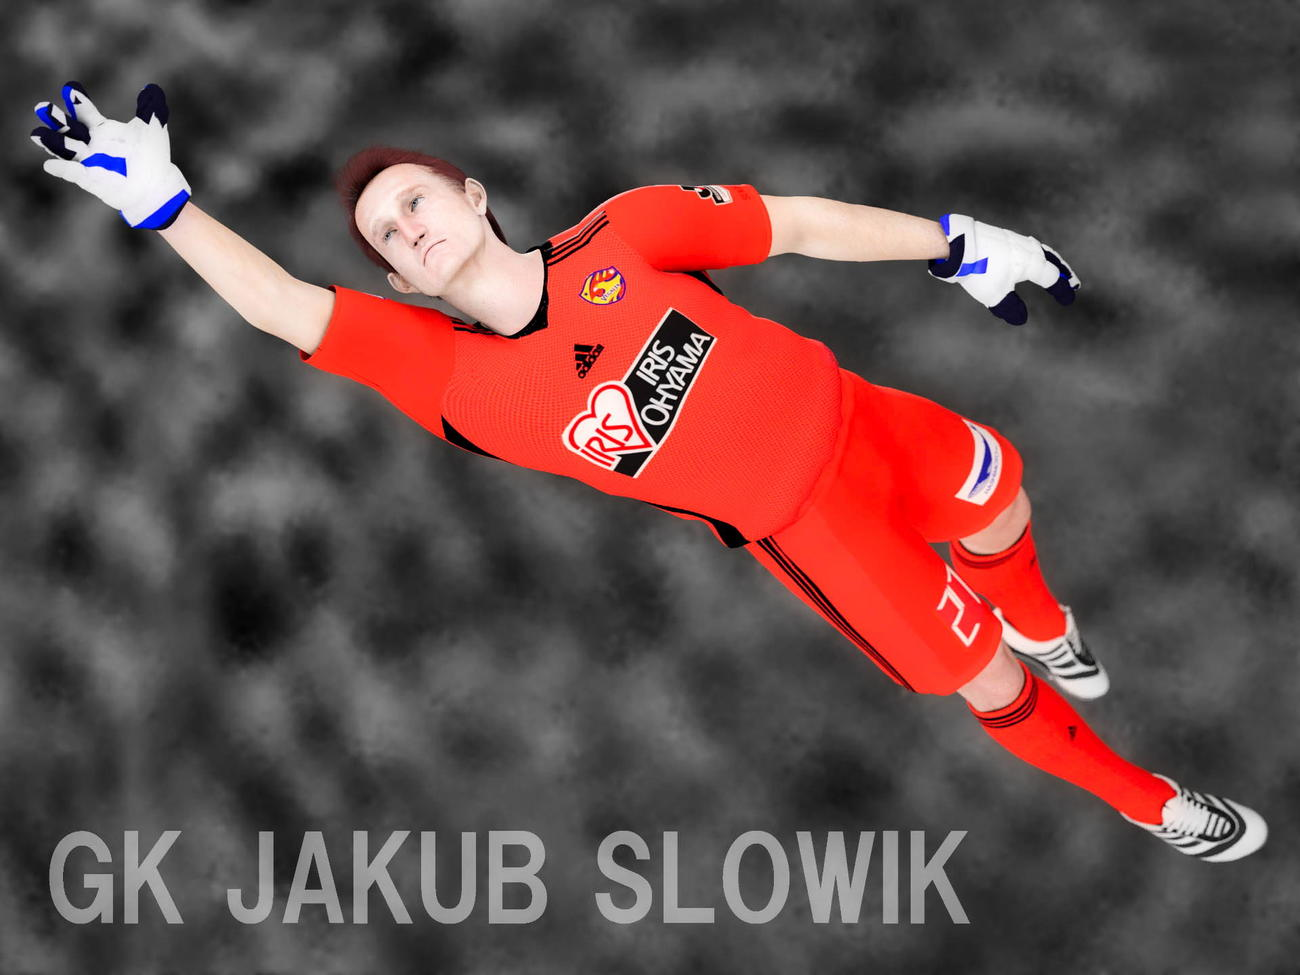 GK JAKUB SLOWIK by Ark_Pilot